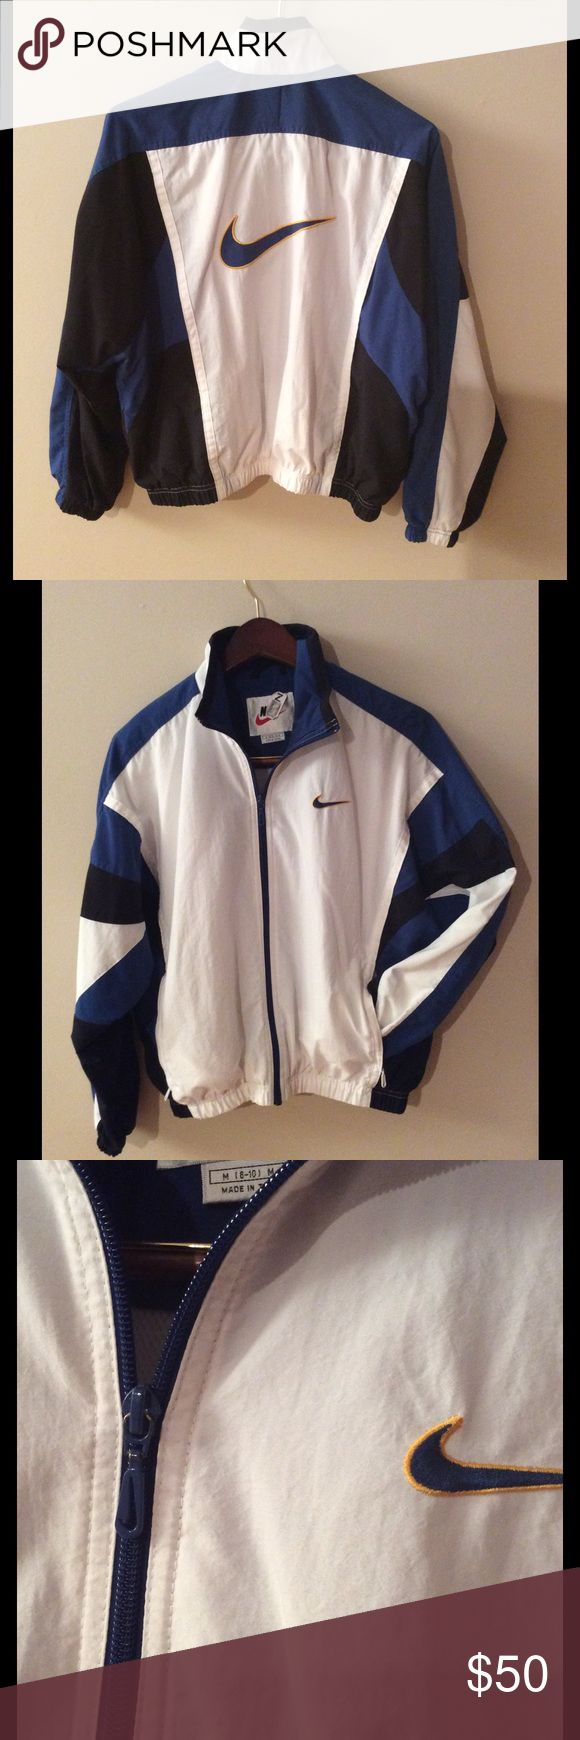 Vintage Nike Jacket Size Small  Vintage Nike Jacket. Great condition. Boys Size Medium (Fits like a women's Size Small). Slight wear on the inside of the zipper shown in pics, otherwise in great condition! Has been dry cleaned! Awesome jacket.  Nike Jackets & Coats